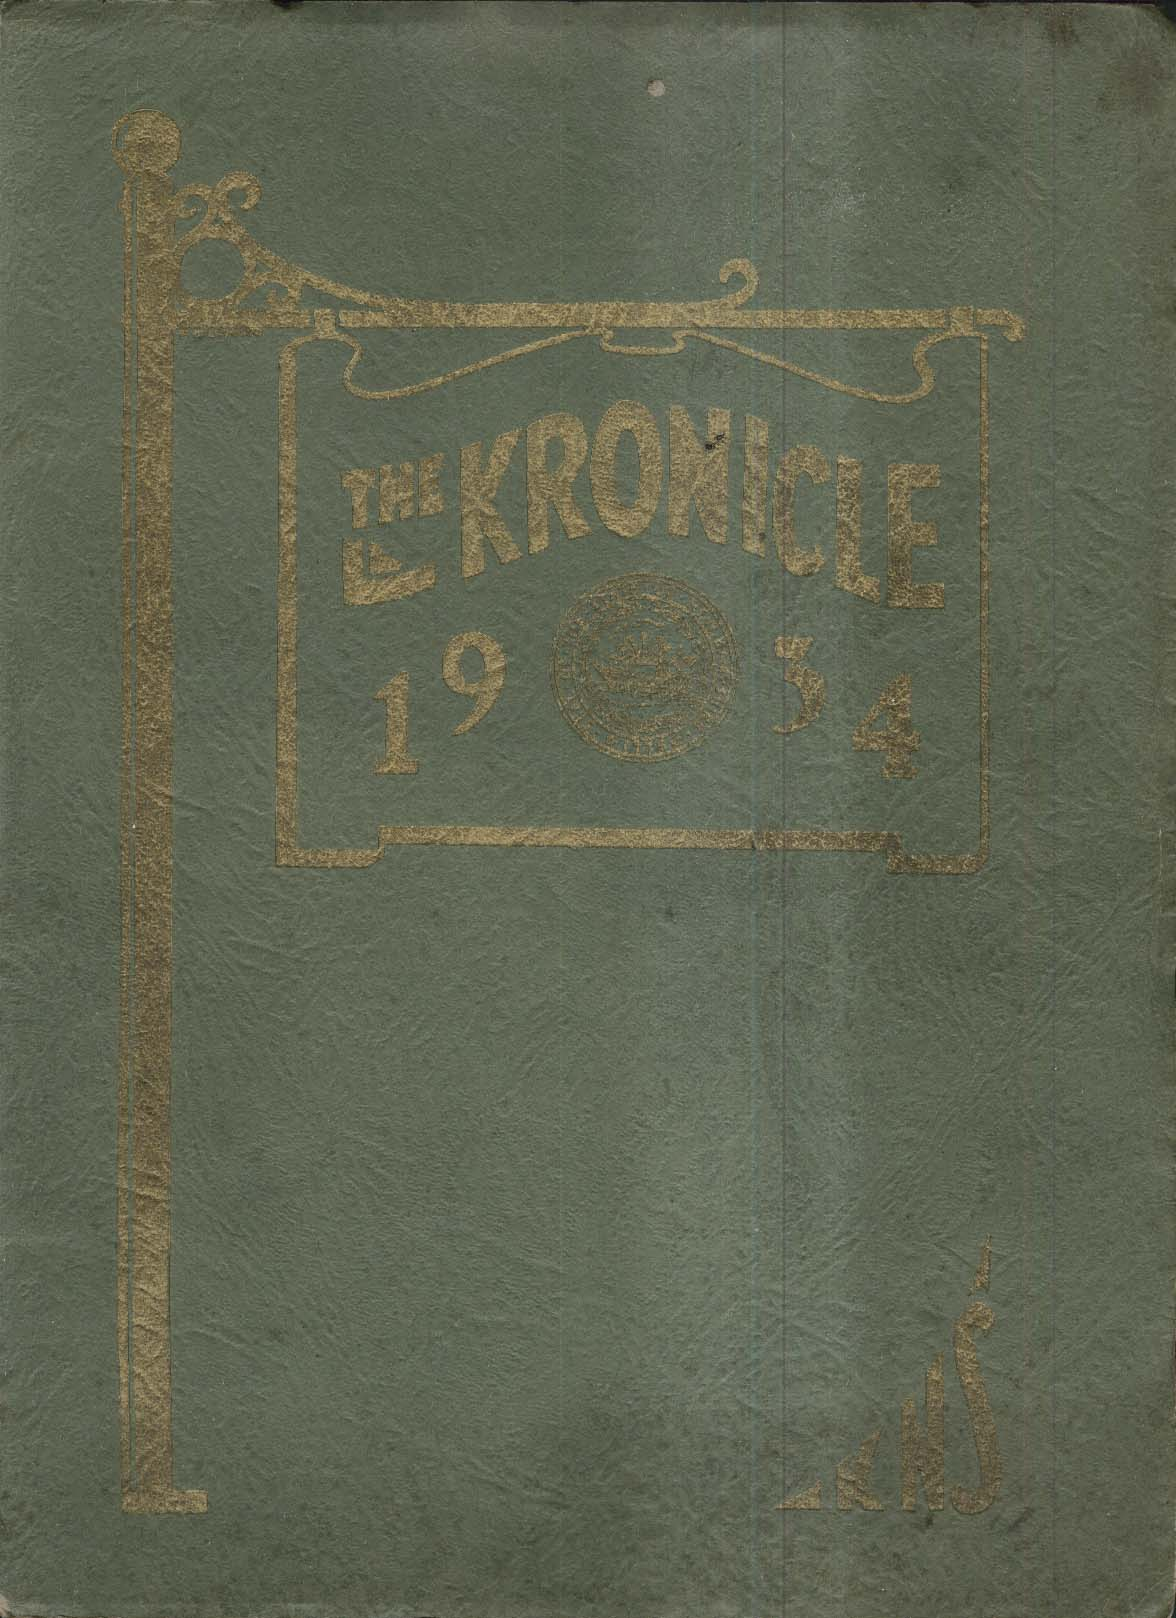 The Kronicle KNS State Normal School Keene New Hampshire NH 1934 Yearbook